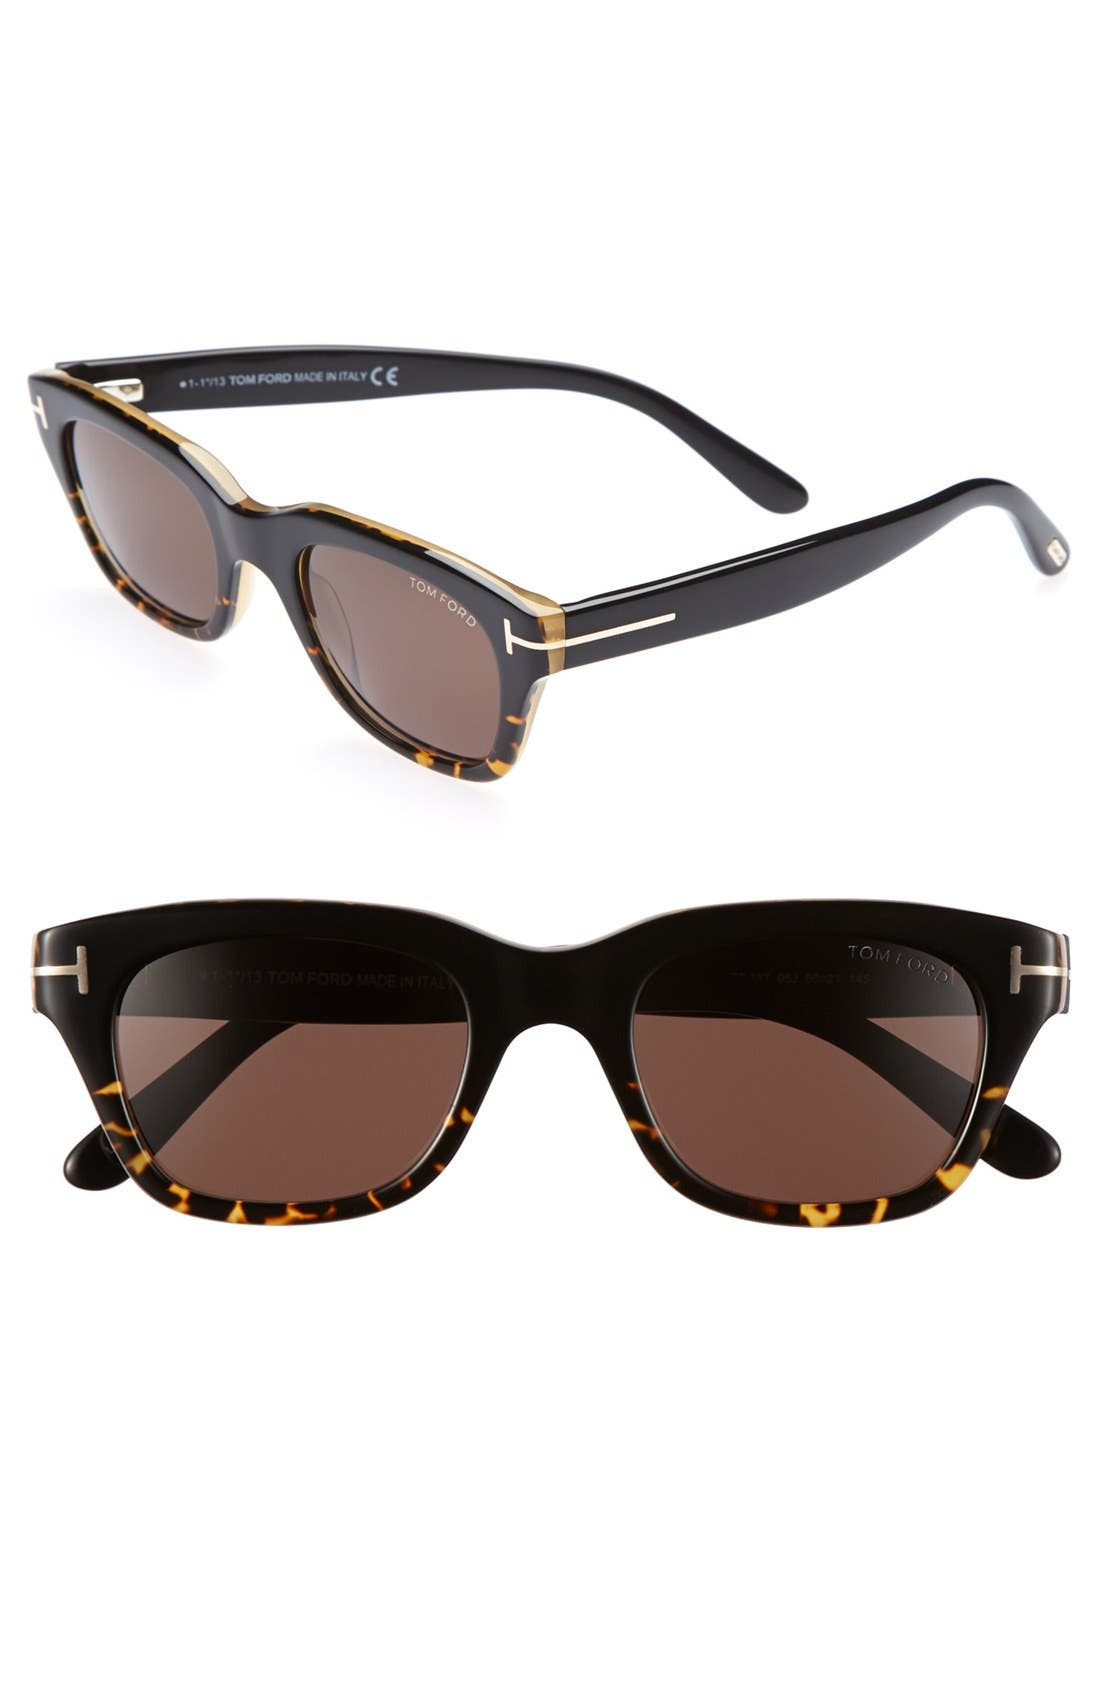 Alternate Image 1 Selected - Tom Ford 'Snowdon' 50mm Sunglasses